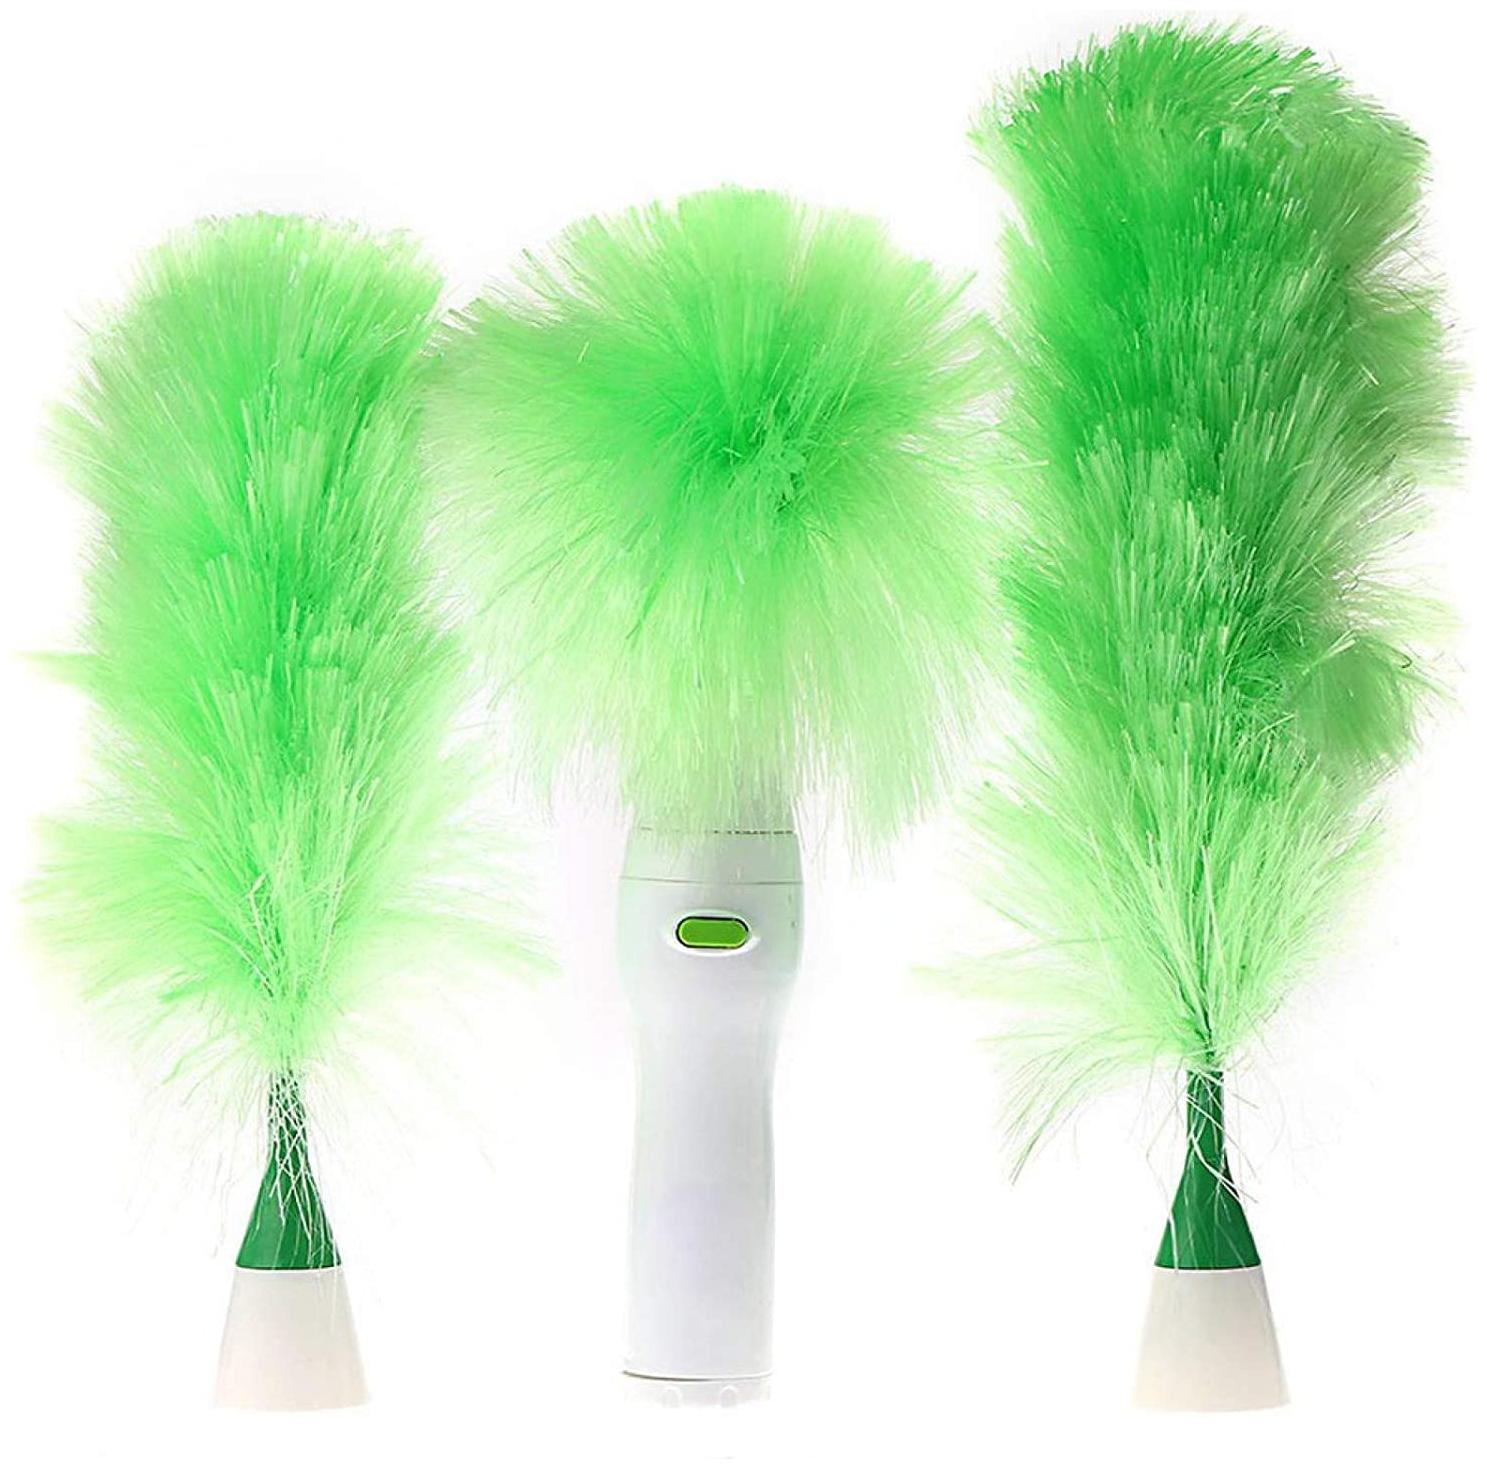 Yuki Holding Feather & Hand-Held Grabbing Spin Duster with Blinds Dust Cleaning...